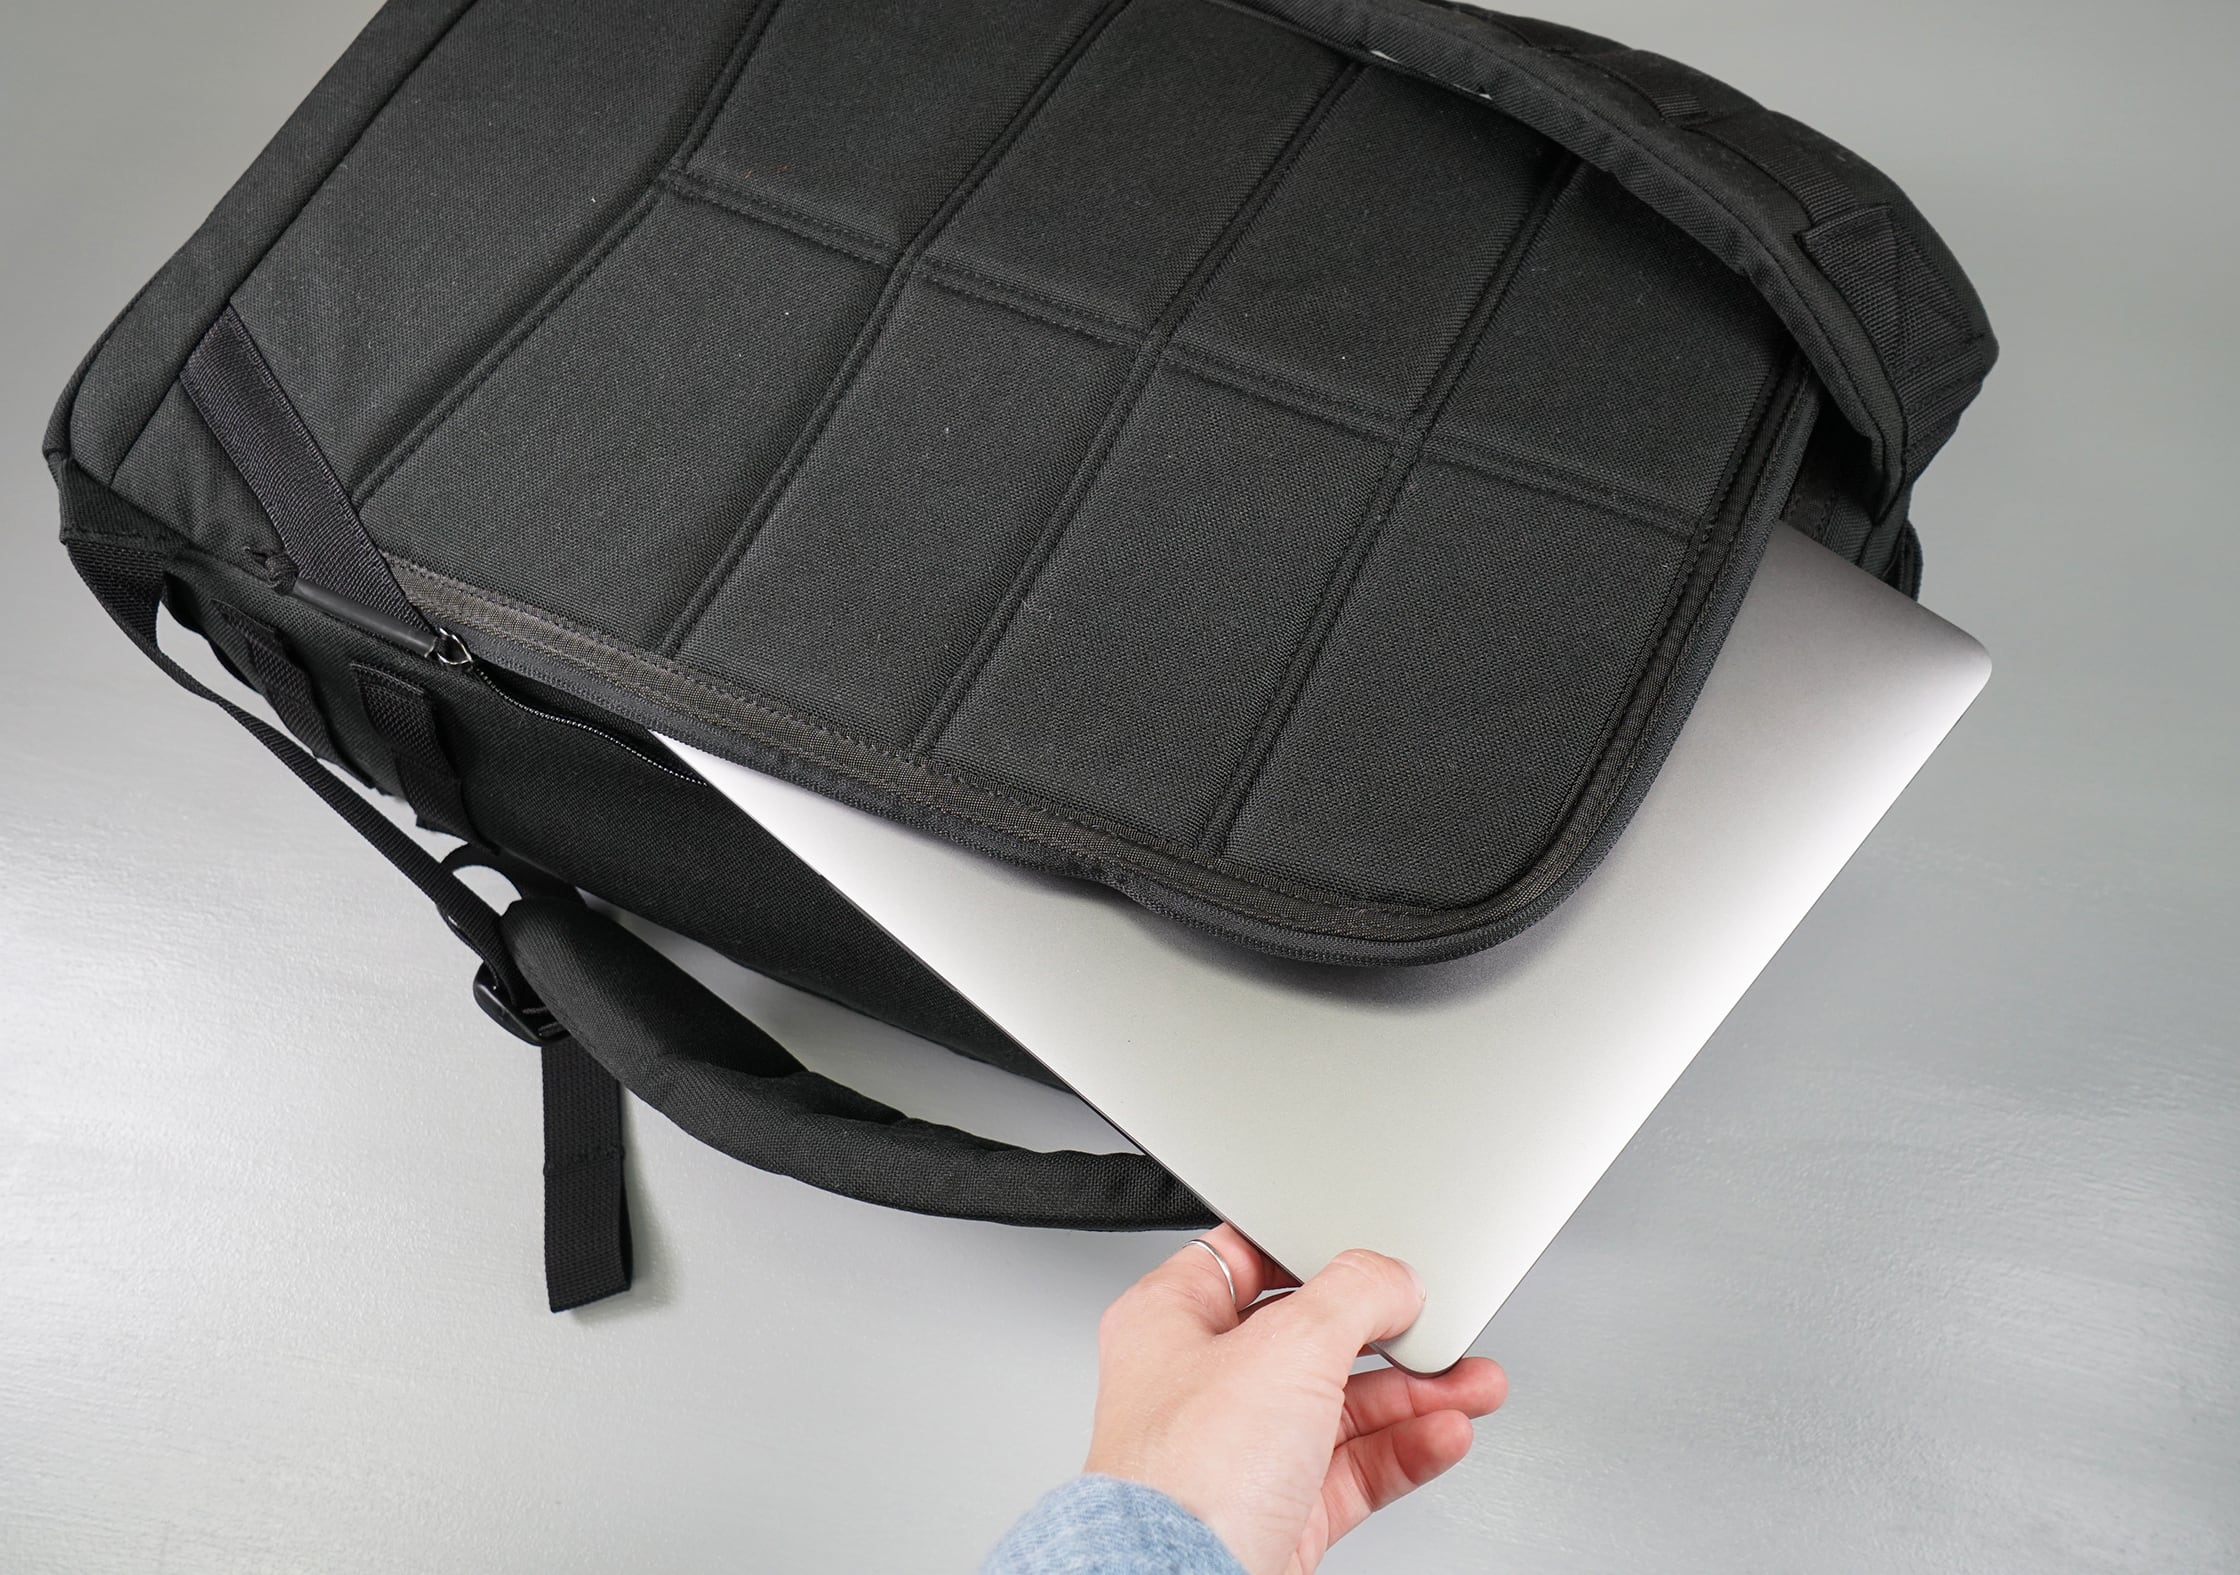 GORUCK GR1 Laptop Compartment